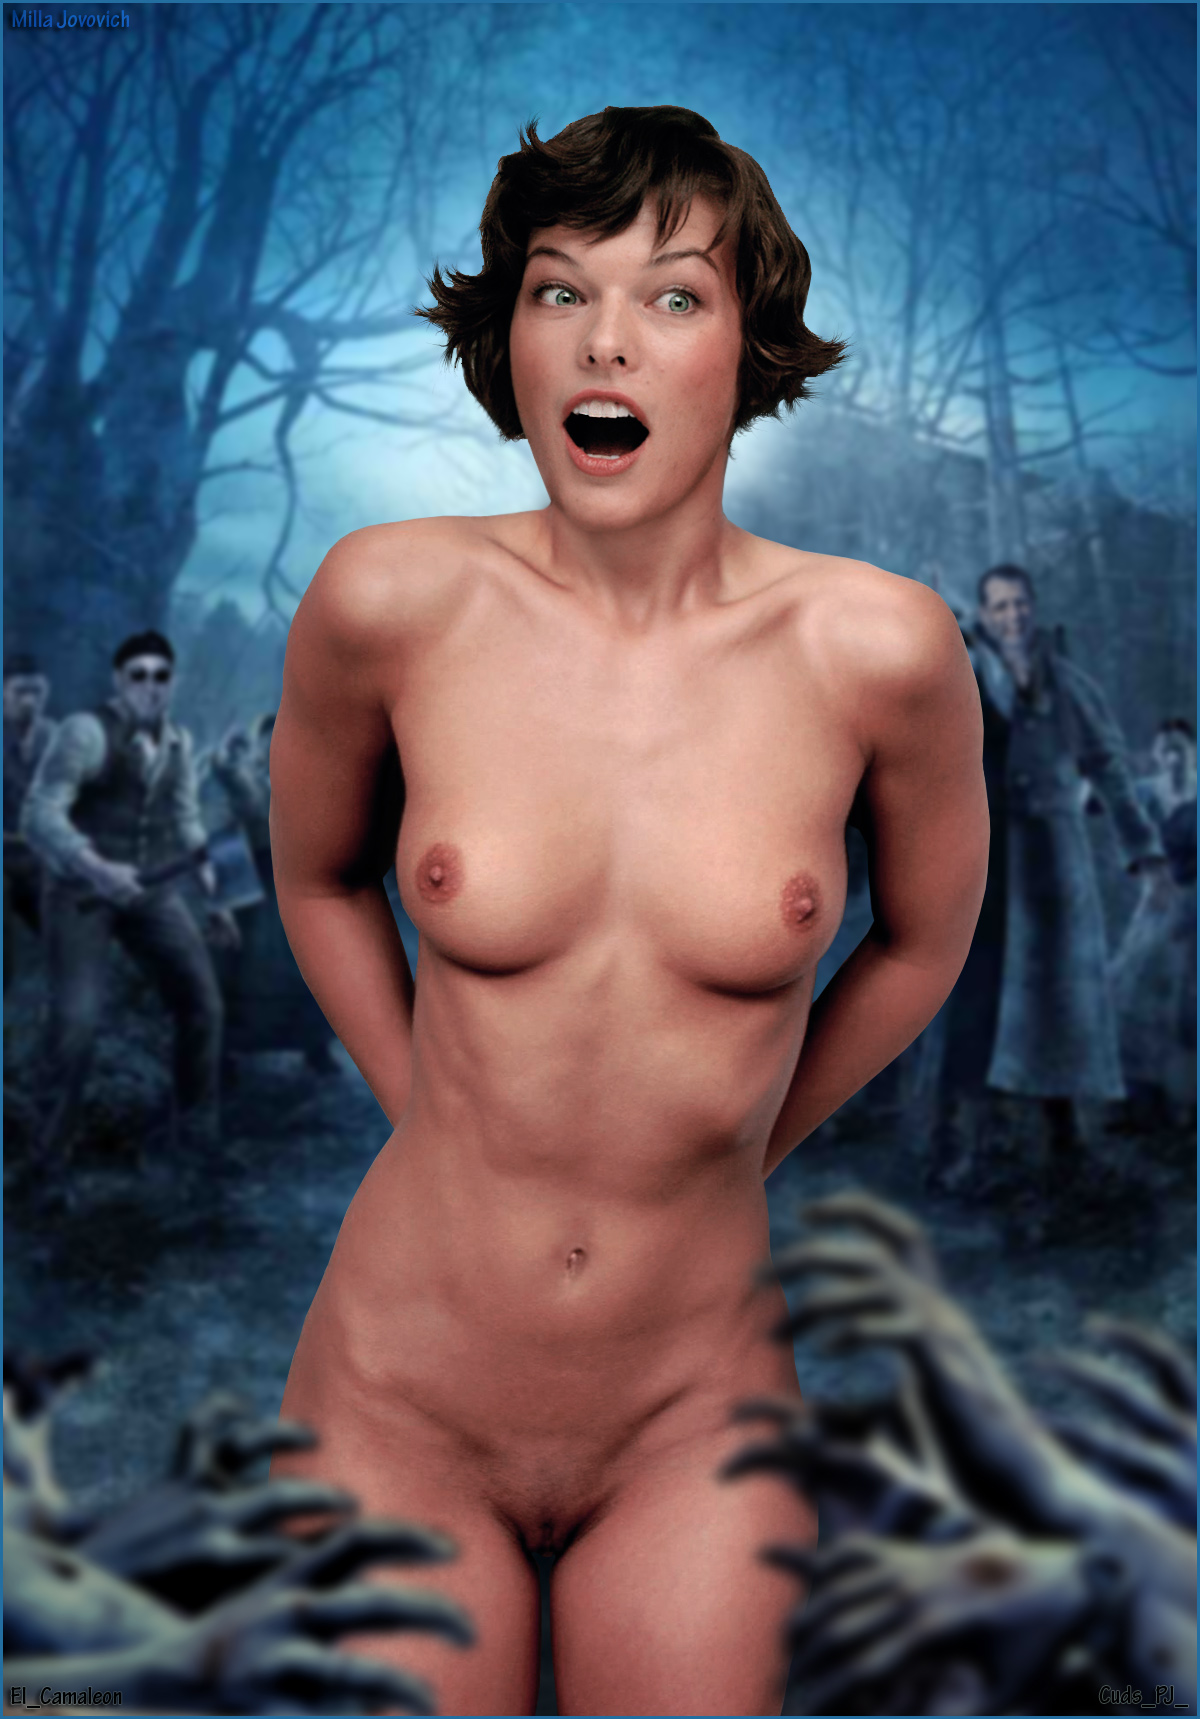 Milla jovovich naked sex #13